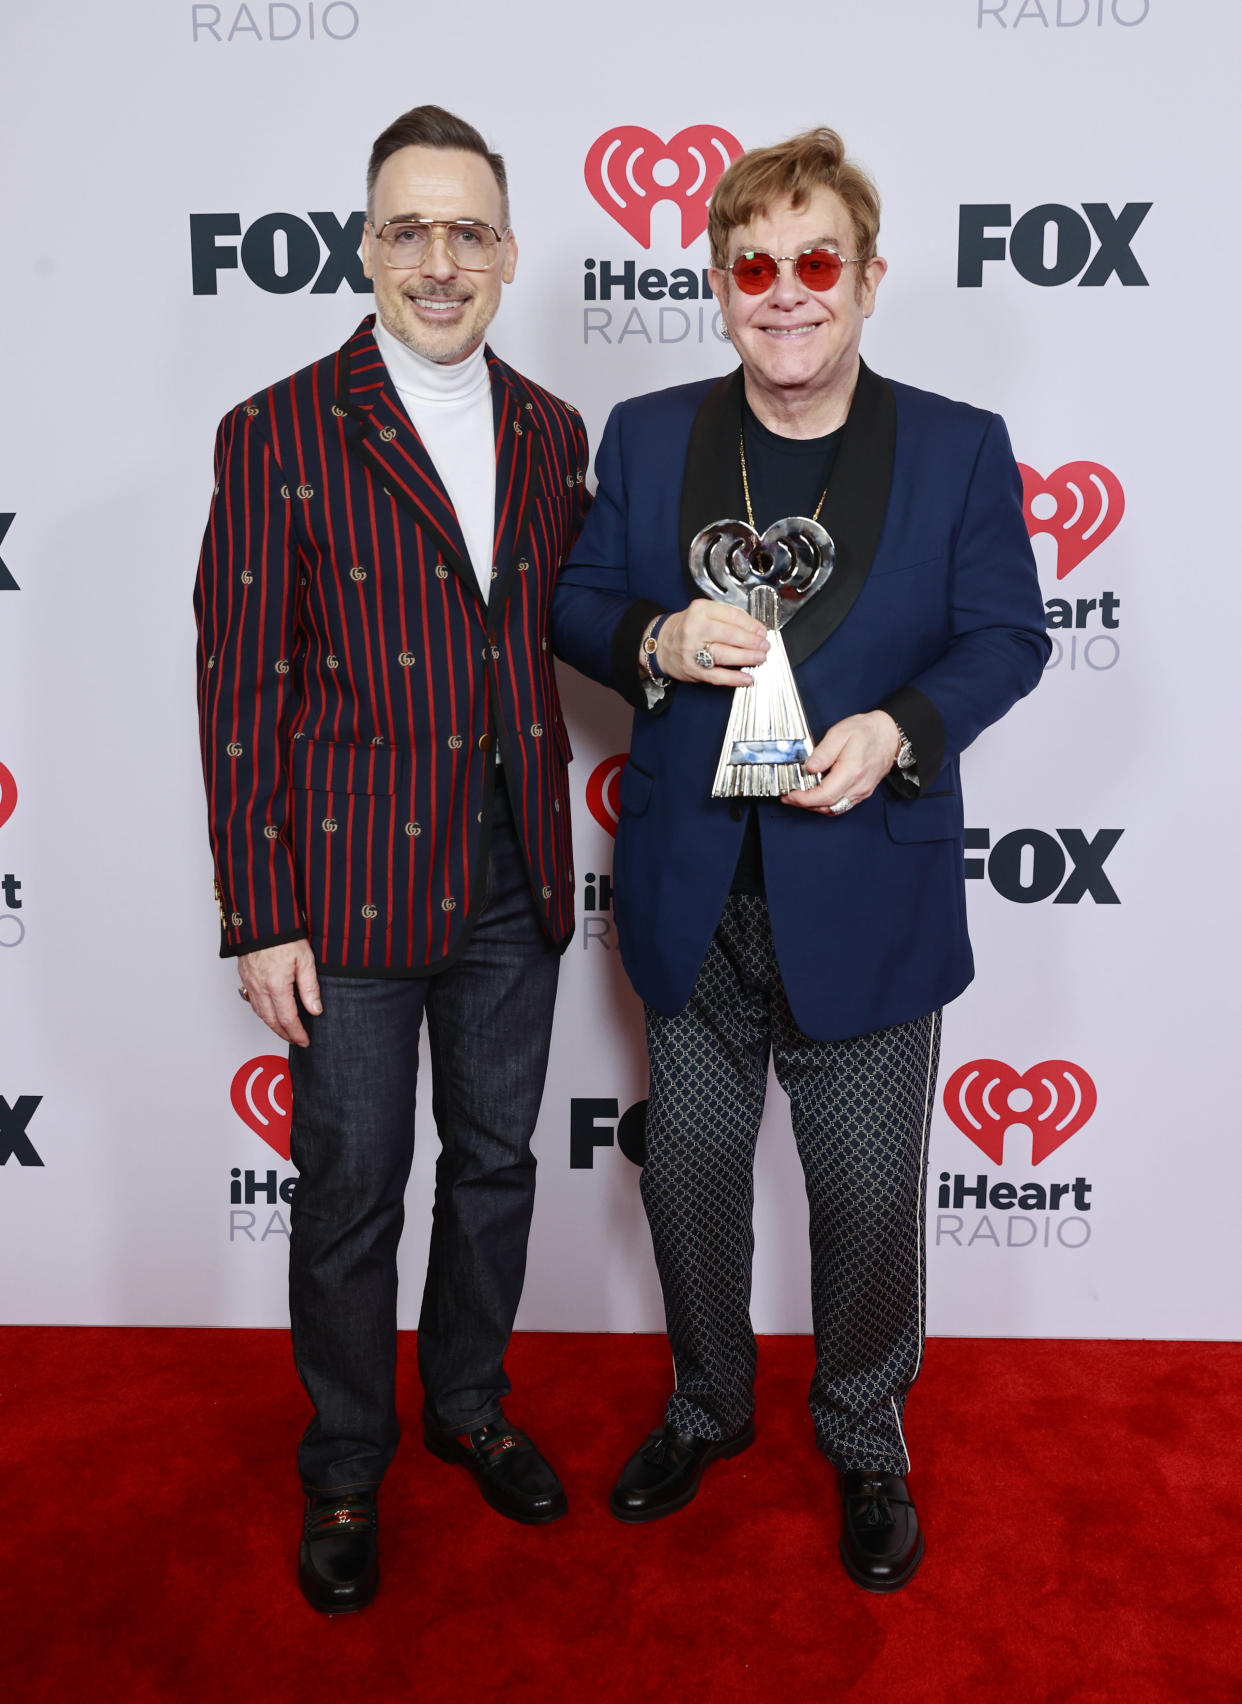 Sir Elton John and David Furnish married in 2014. (Photo by Emma McIntyre/Getty Images for iHeartMedia)